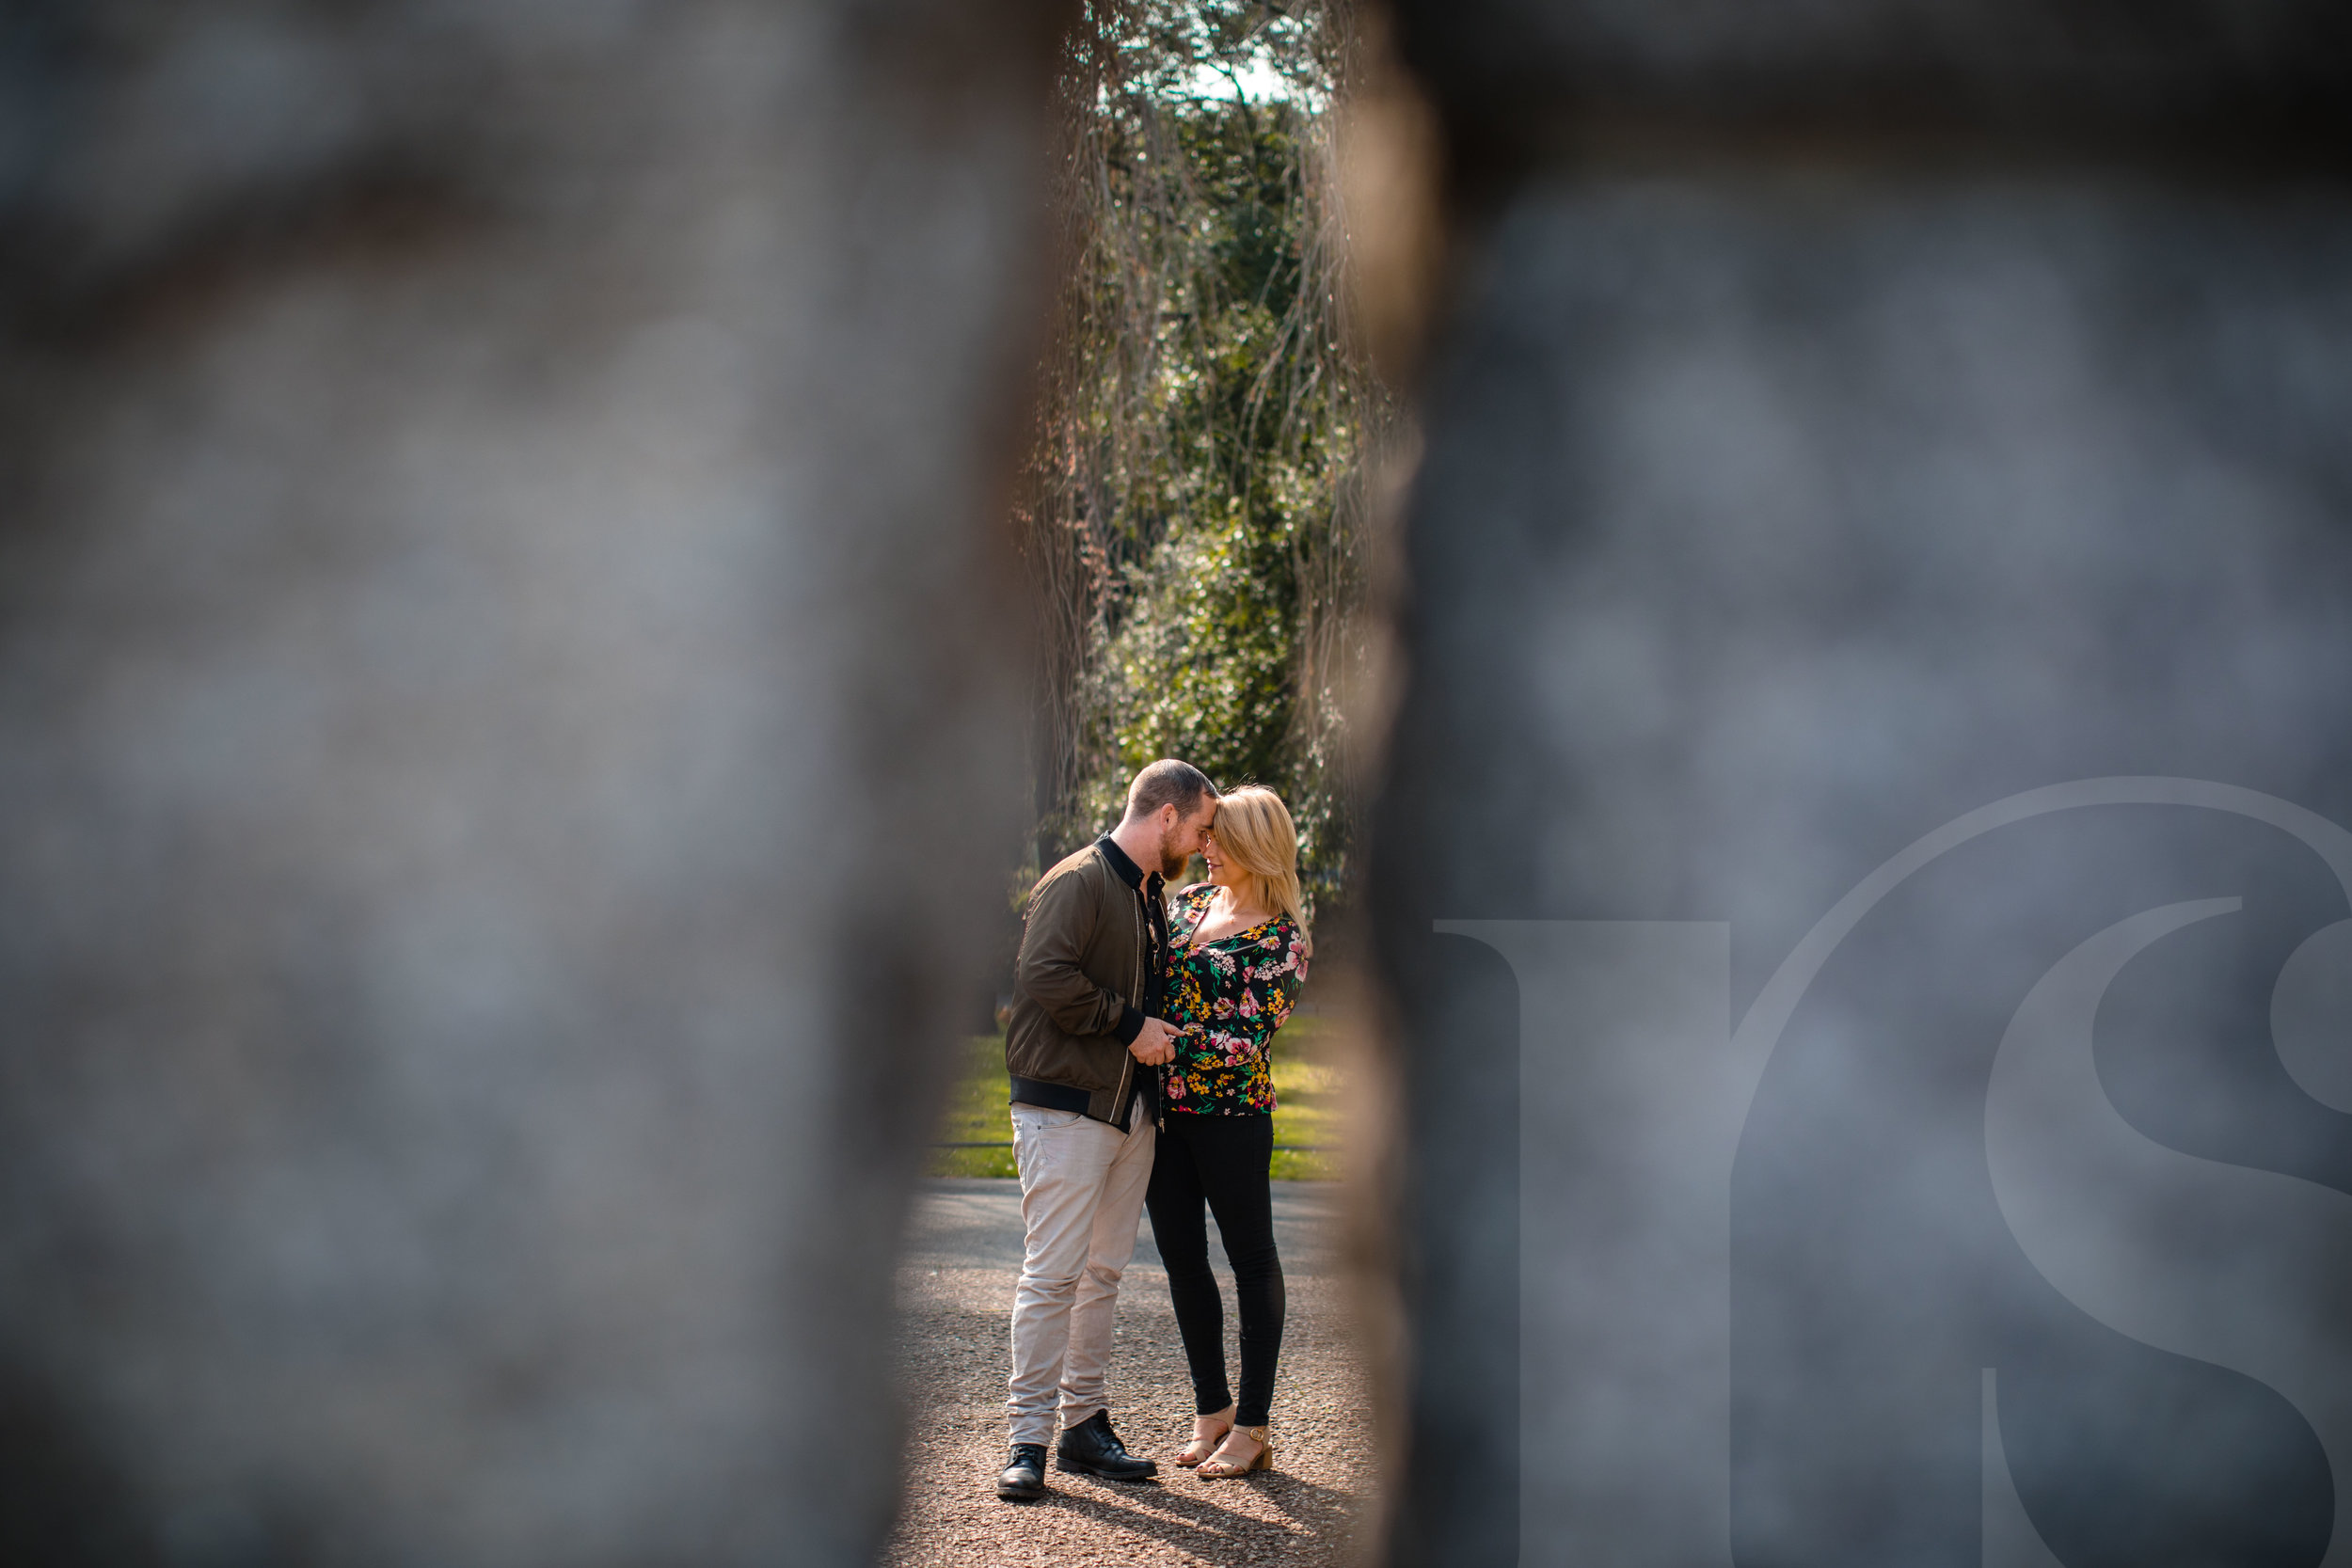 dublin-engagement-shoot-1.jpg